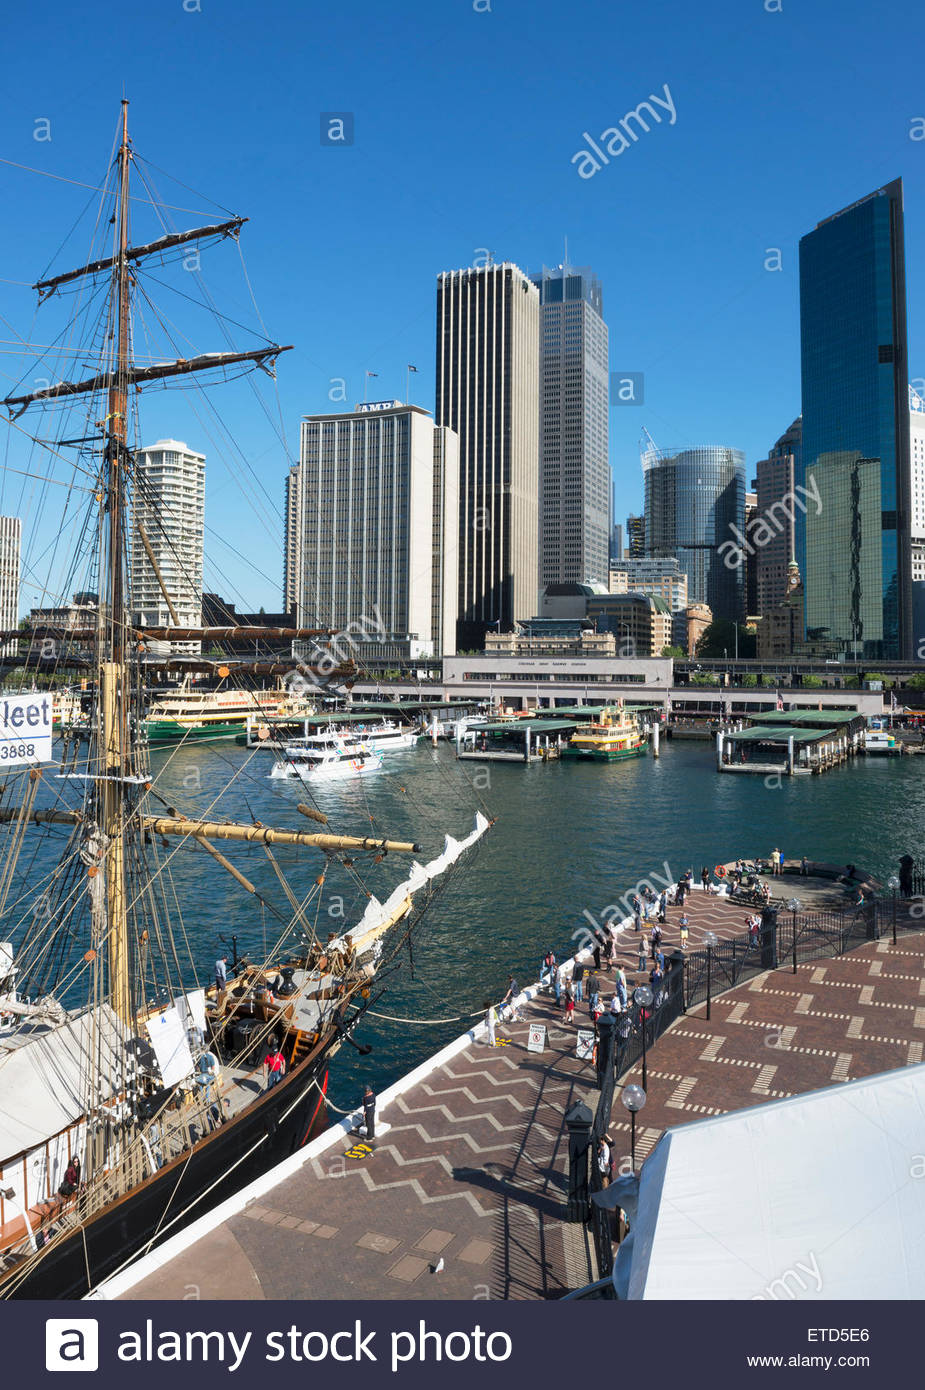 Circular Quay, Sydney, New South Wales, Australia - Stock Image